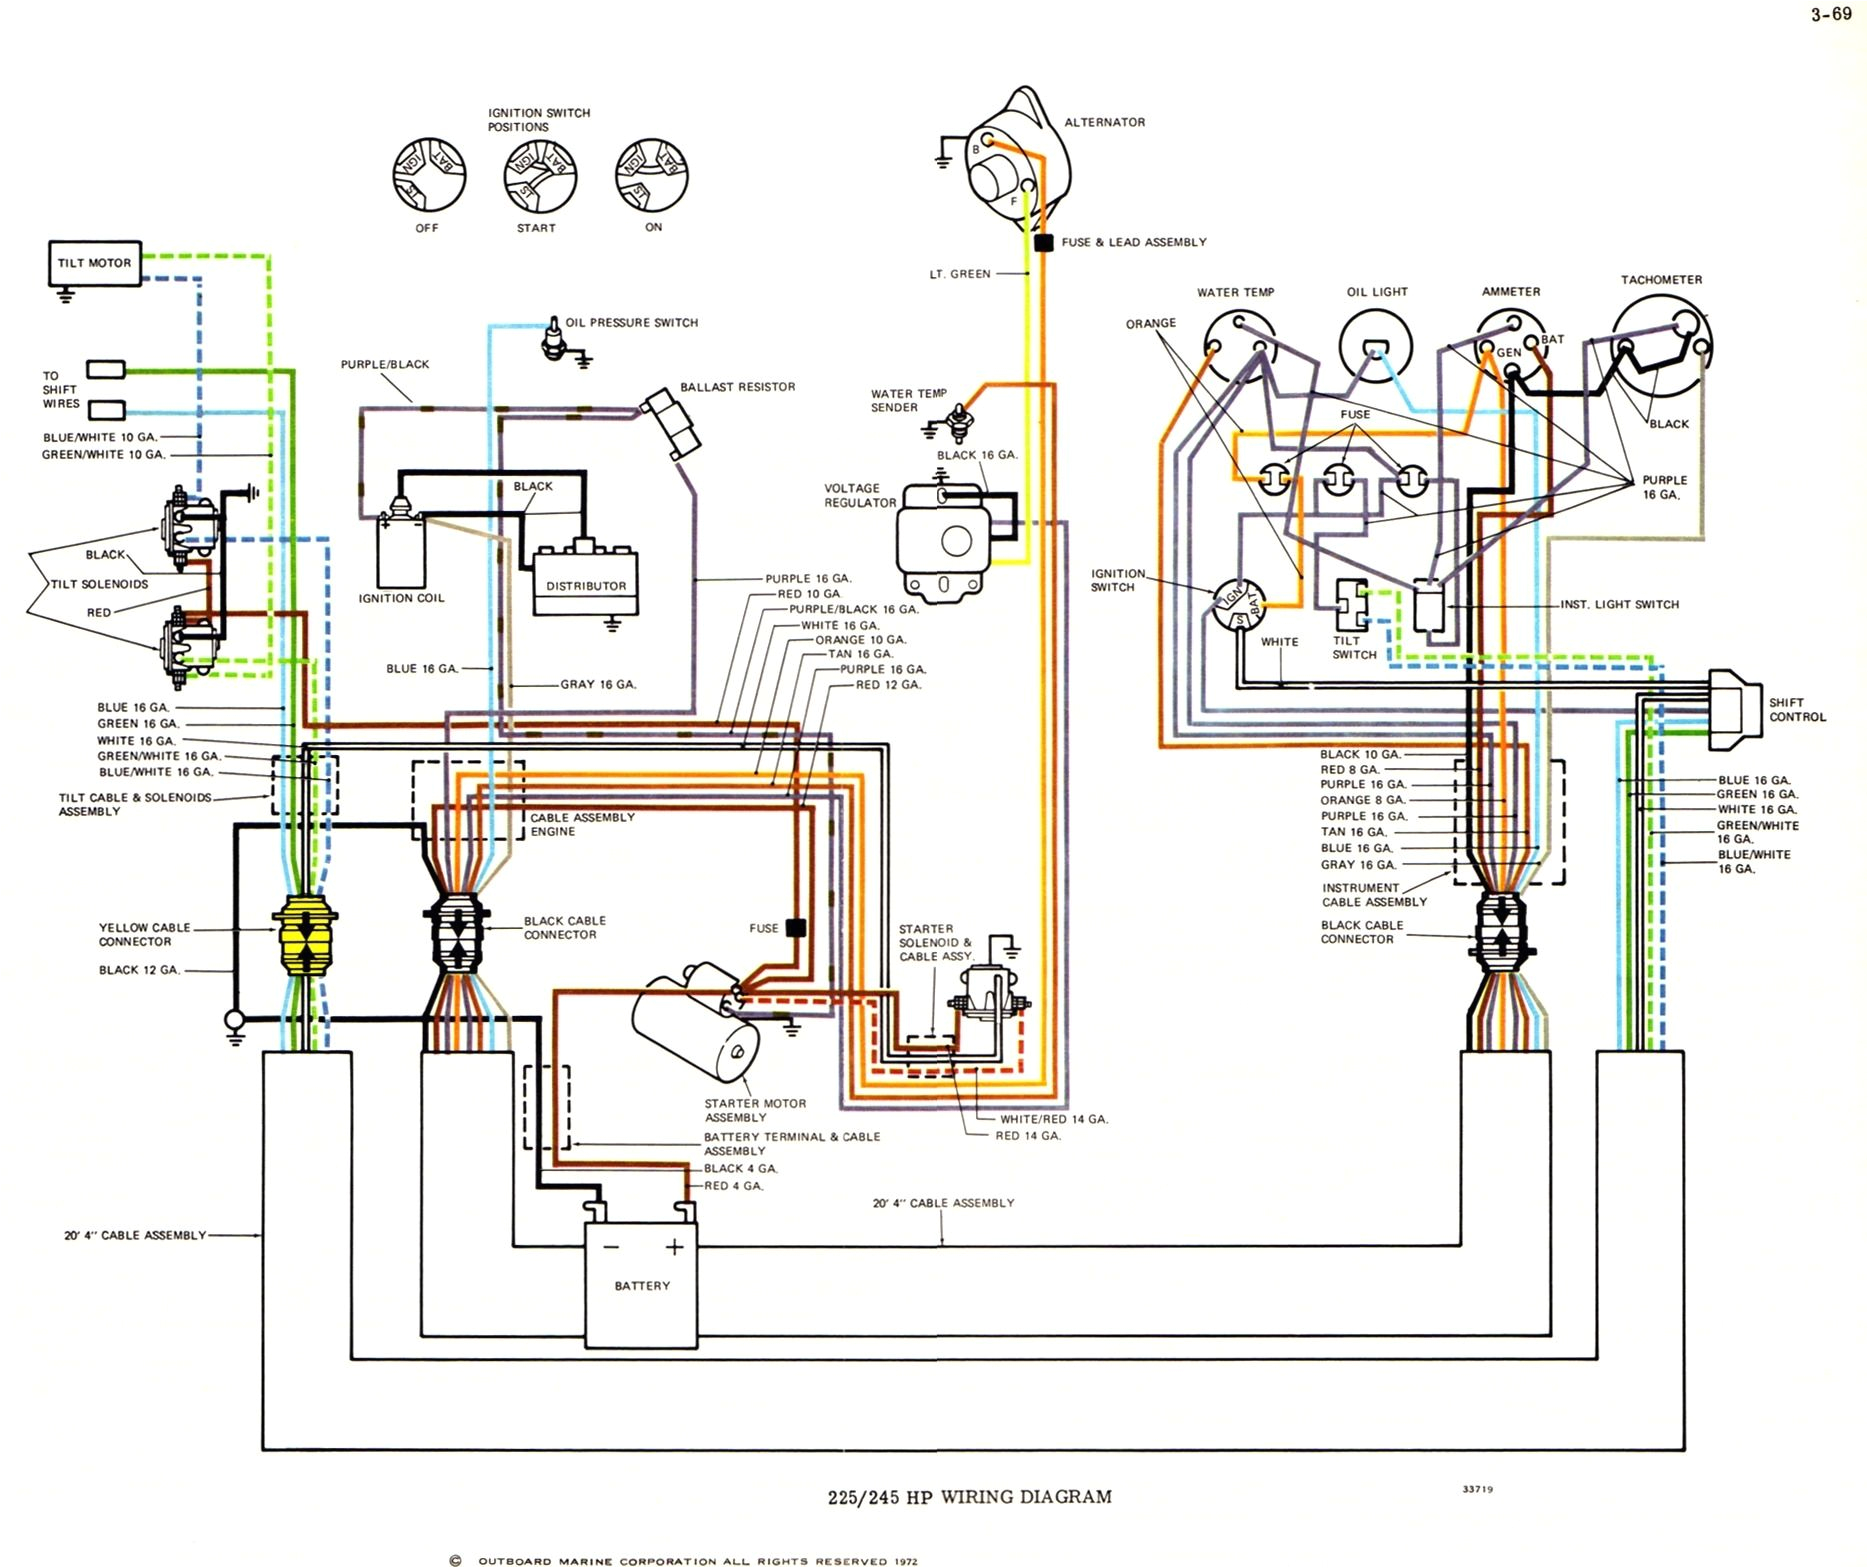 yamaha outboard electrical wiring diagram wiringdiagram org yamaha outboard wiring diagrams online yamaha outboard electrical wiring